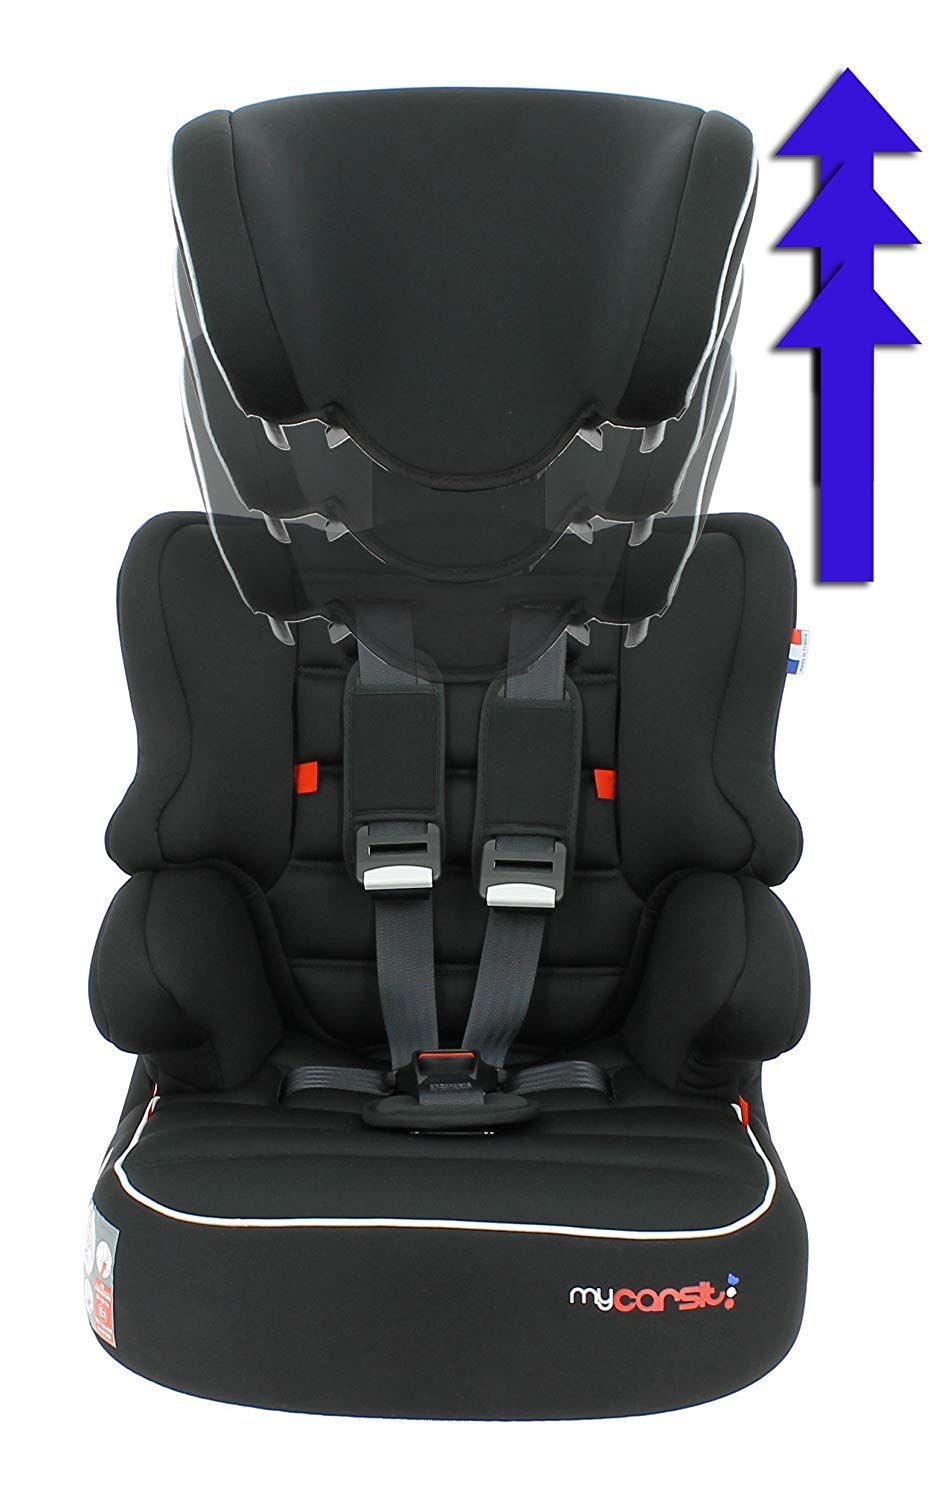 Child car seat Beline Grp 1/2/3 (9-36kg) with side protection - Nania Skyline black nania Booster seat with group 1/2/3 harness for children between 9 and 36 kg. The BELINE group 1/2/3 car seat is approved according to ECE R44/04 and is manufactured and tested in France. Beline car seat to transport your child in the car in complete safety. The car seat can only be installed facing the road in the back seat of the car. The car seat is secured with the 3-point seat belt and the child is secured with the 5-point harness. 2